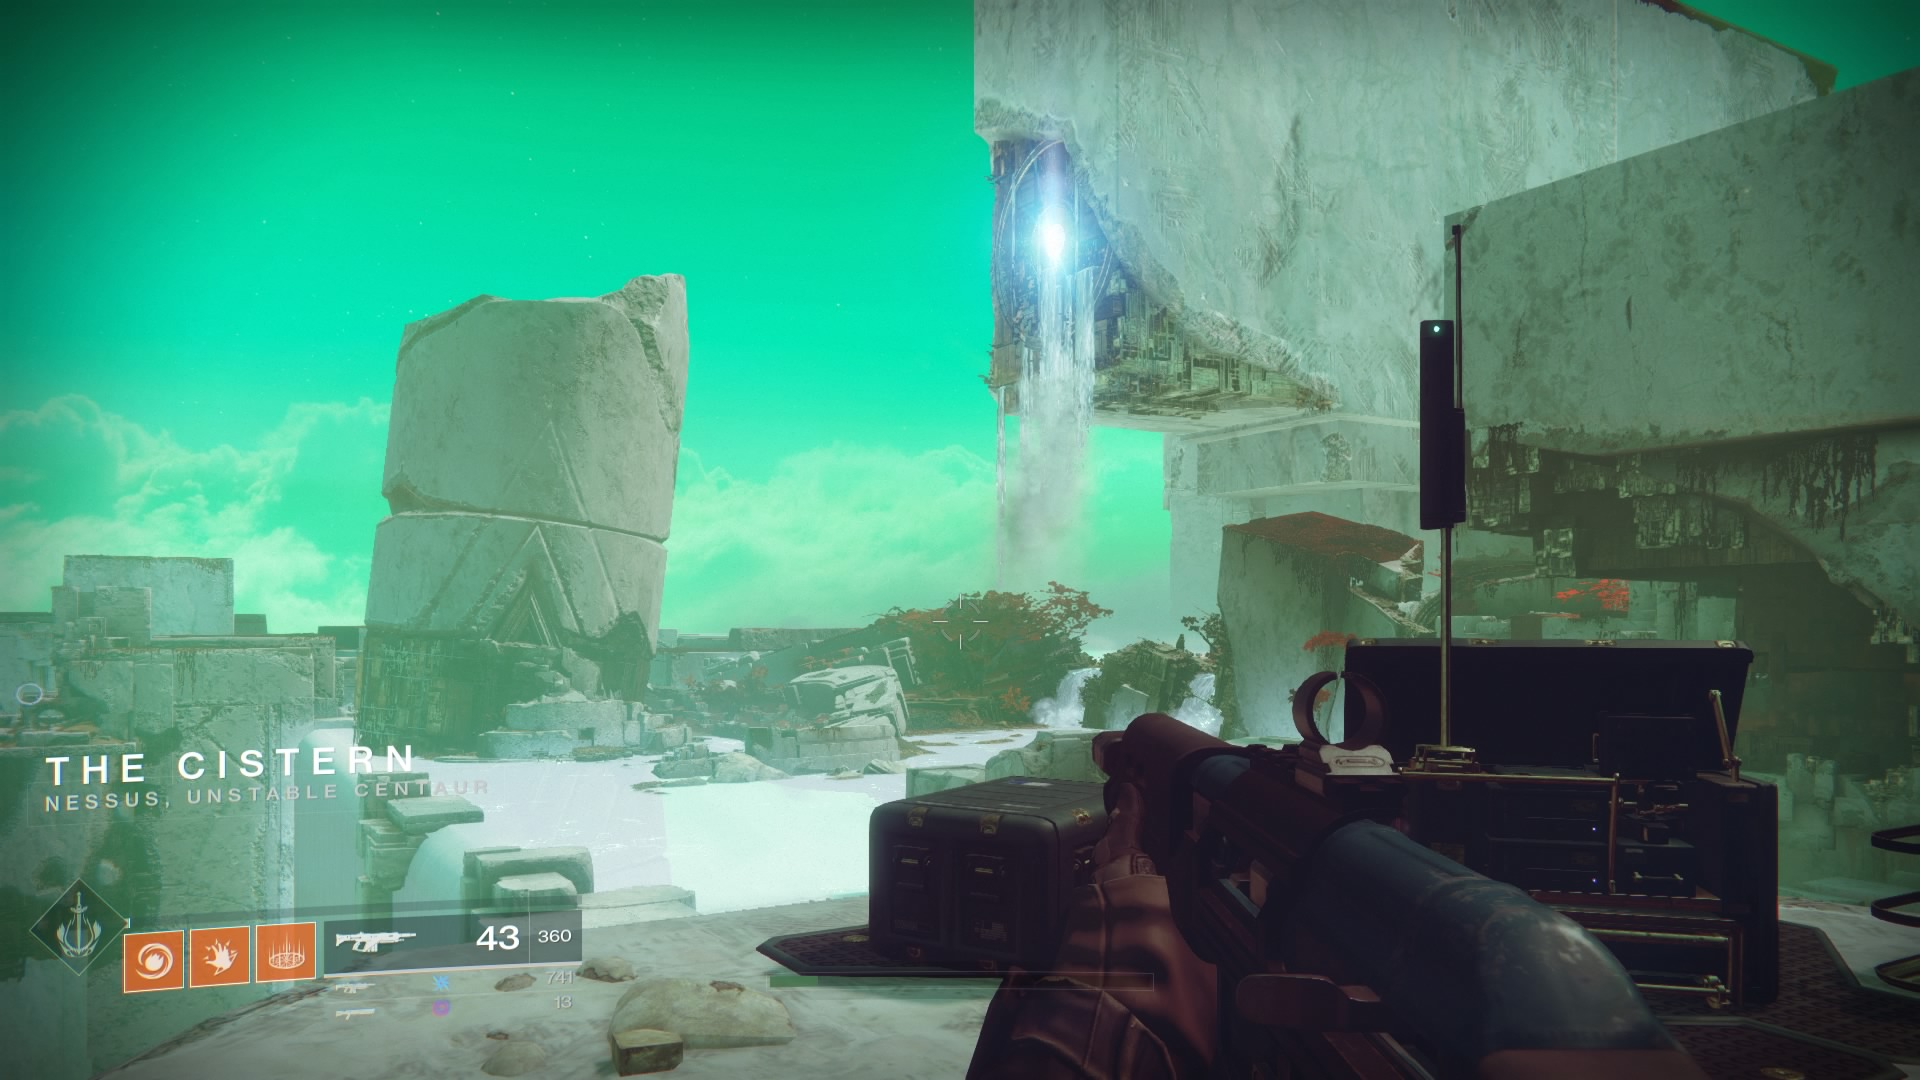 Destiny 2 is Gorgeous, so Where's the Photo Mode Bungie